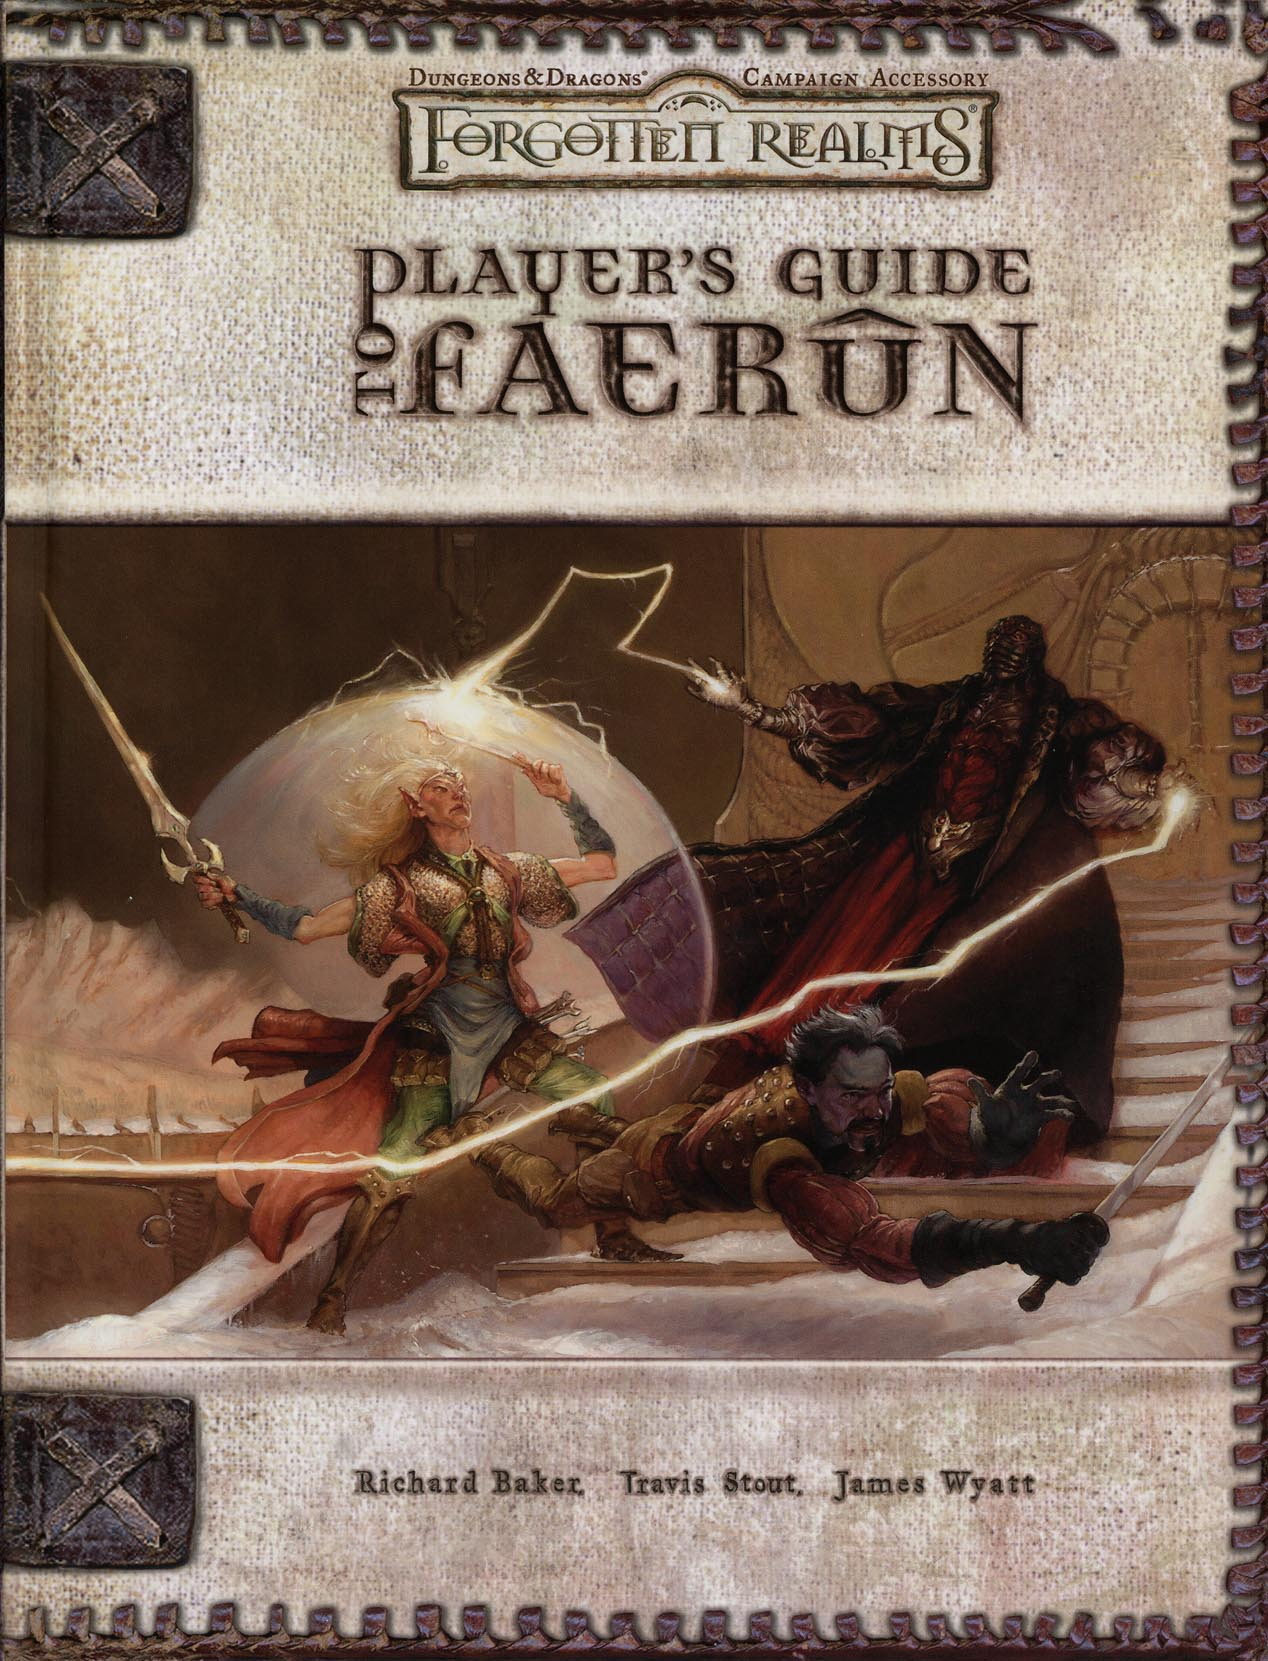 Player's Guide to Faerûn